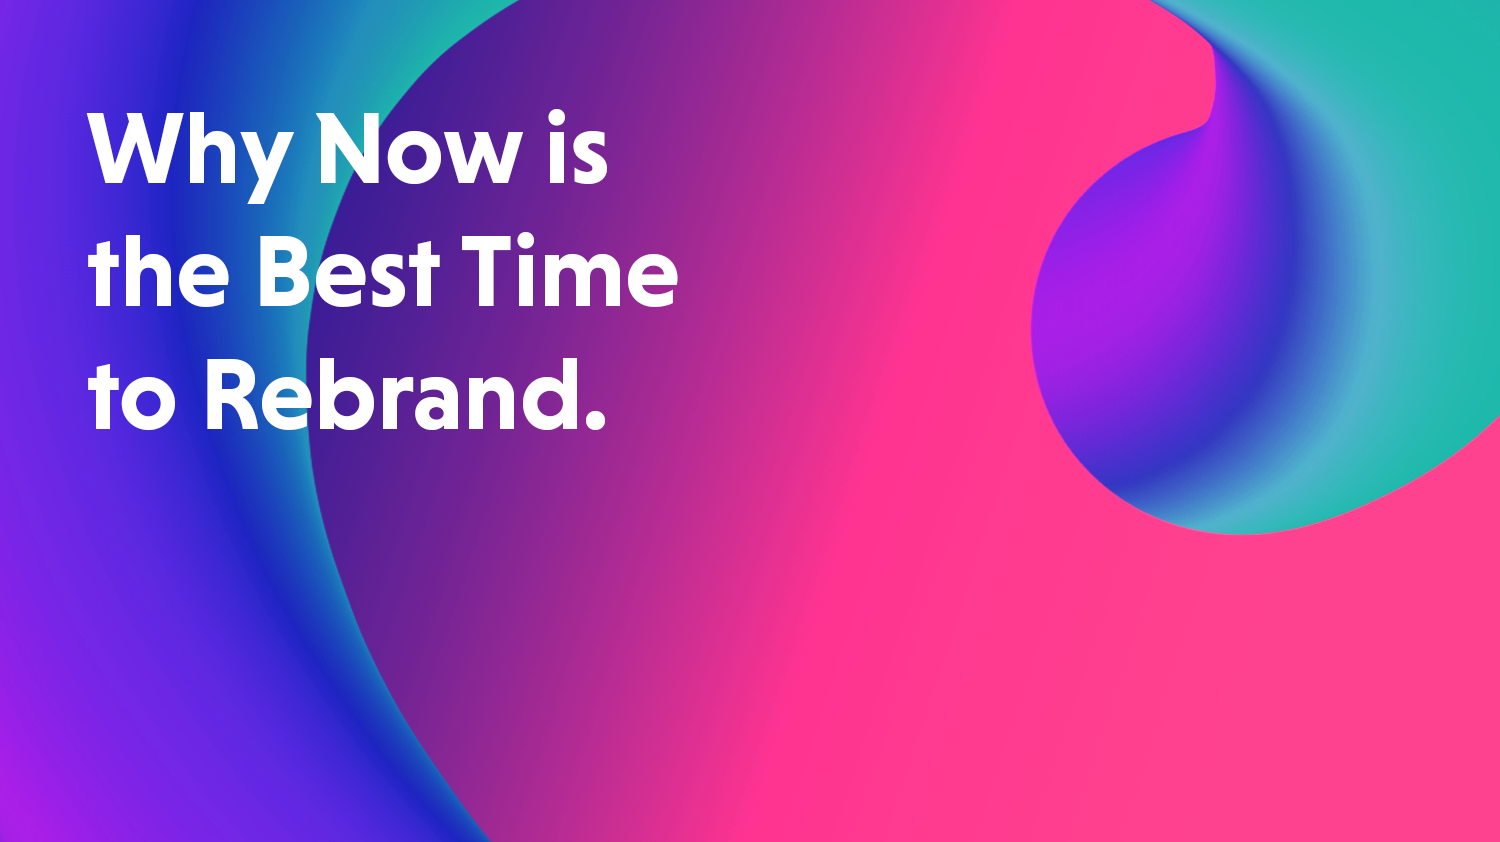 Why Now Is The Best Time To Rebrand